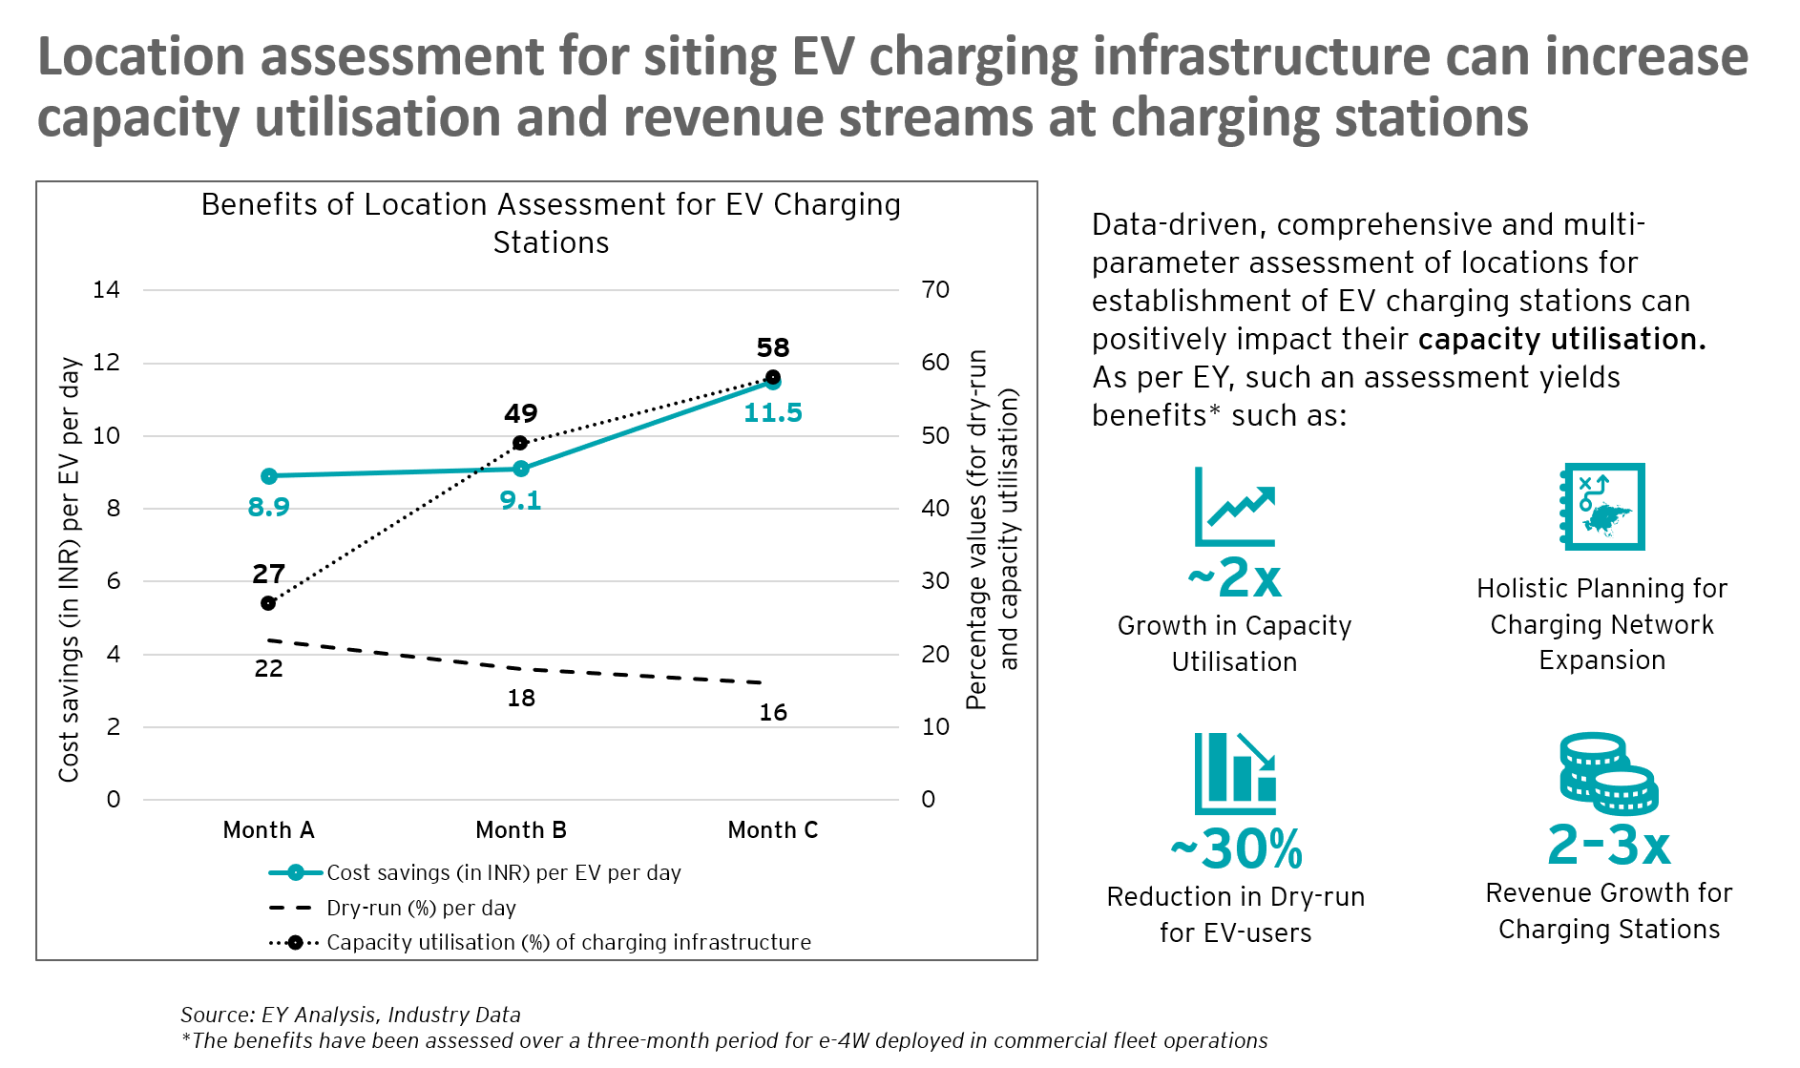 EY Analysis, Industry Data; The benefits have been assessed over a three-month period for e-4W deployed in commercial fleet operations